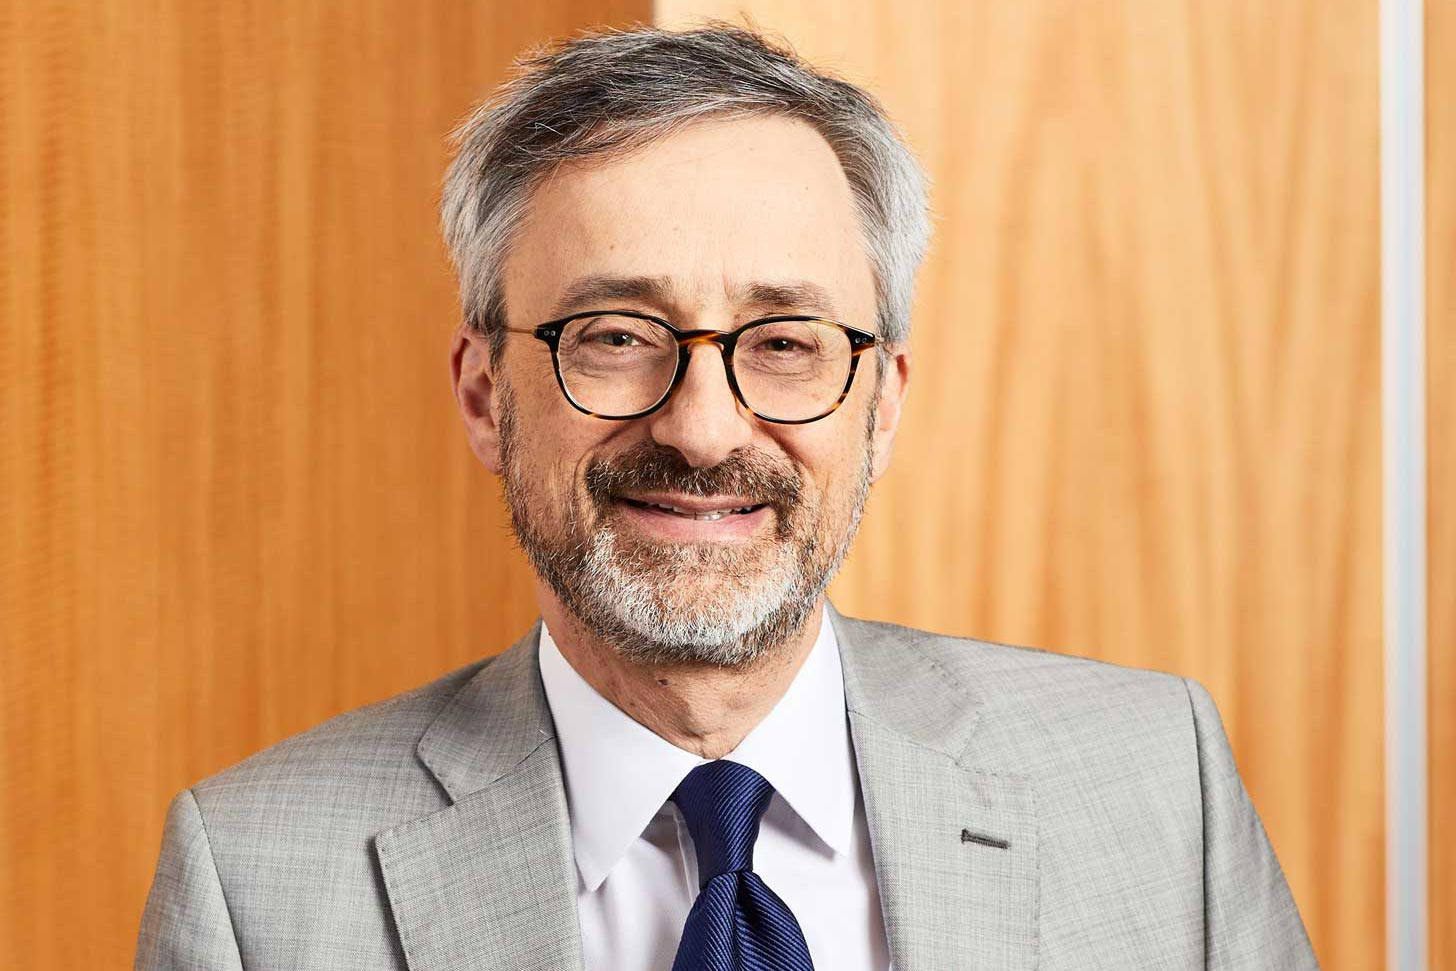 Philippe Krakowsy, IPG's new CEO, isn't like any other